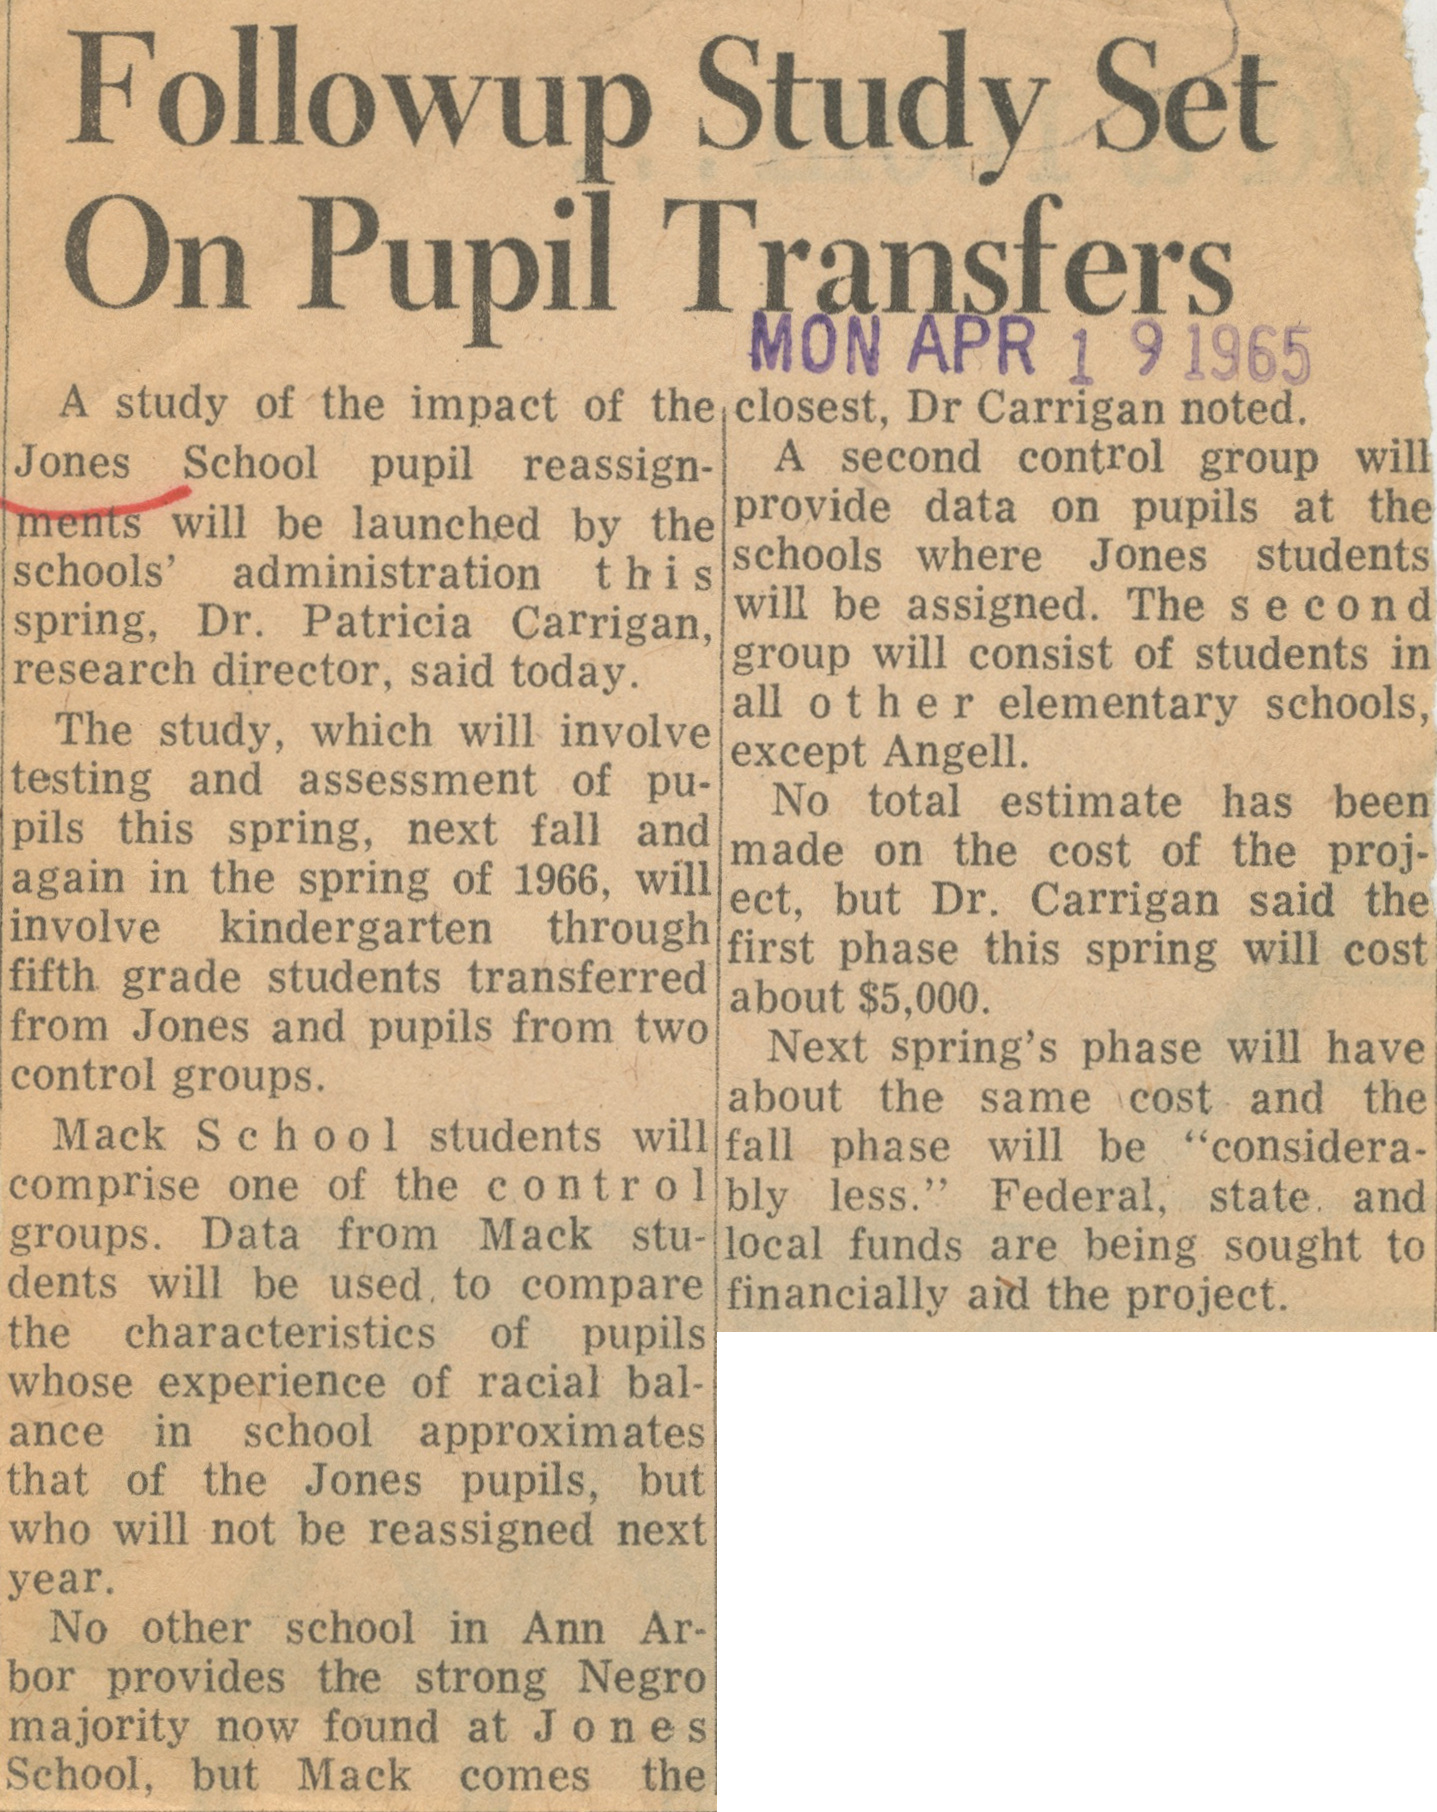 Followup Study Set On Pupil Transfers image